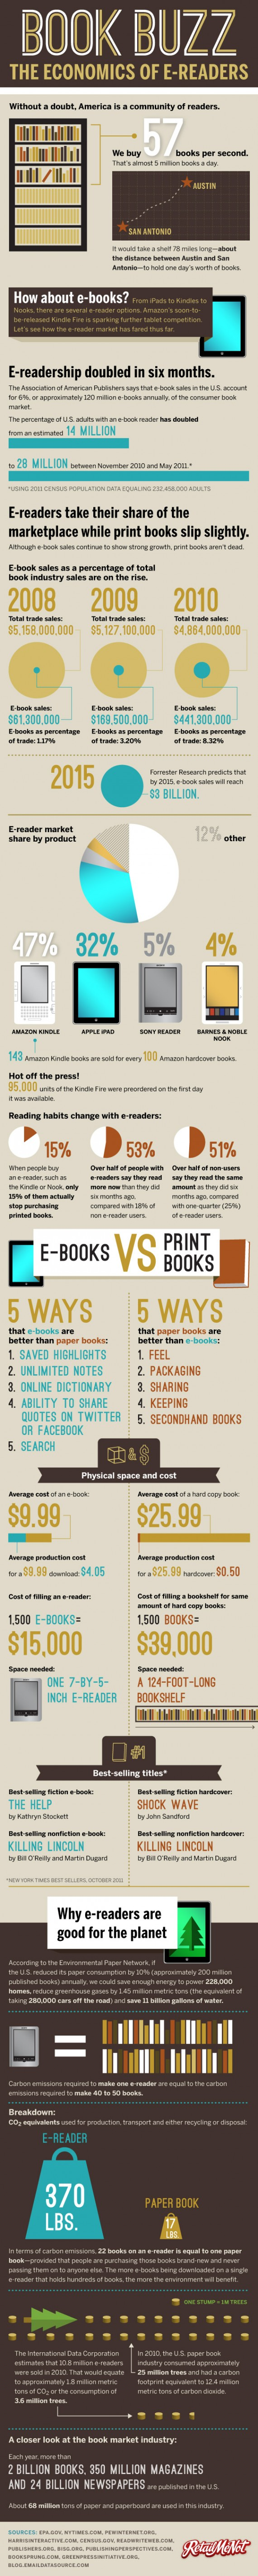 infographic-ebook-readers